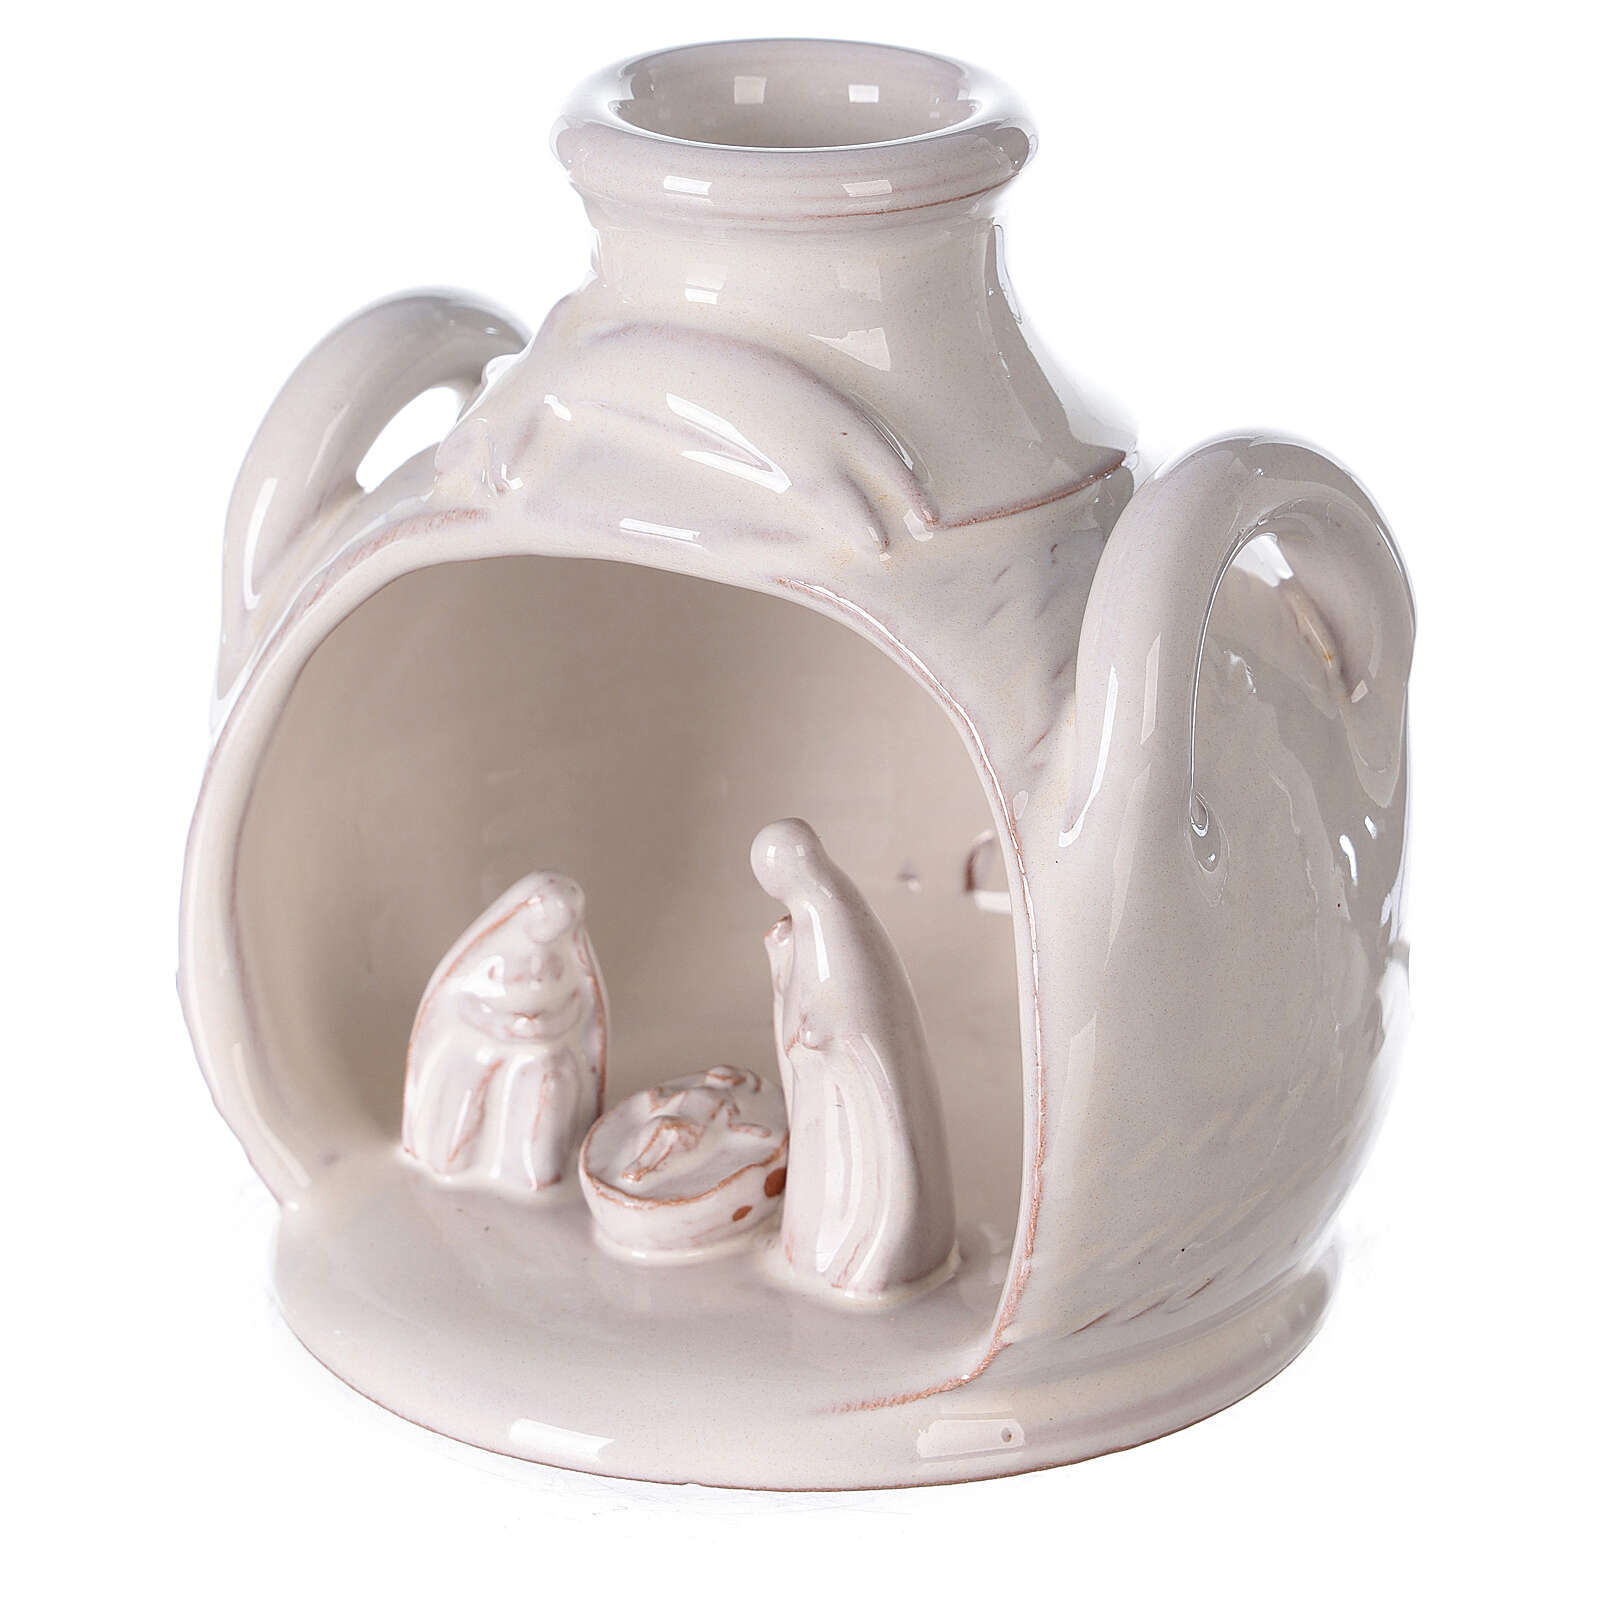 Holy Family set in jar polished white Deruta terracotta 12 cm 4